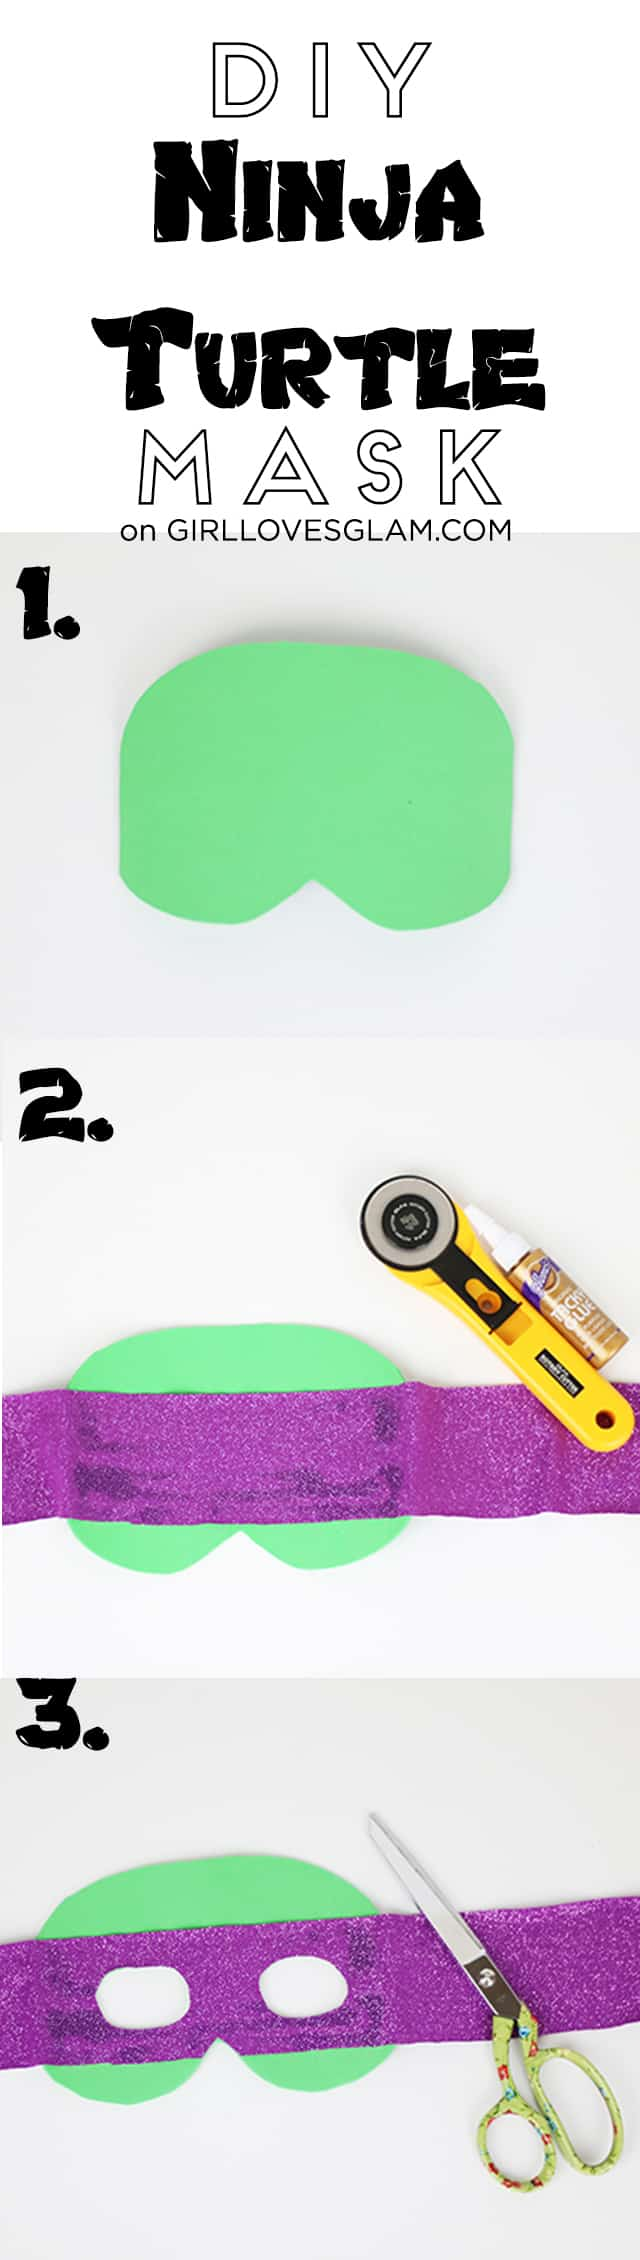 DIY Ninja Turtle Mask on www.girllovesglam.com